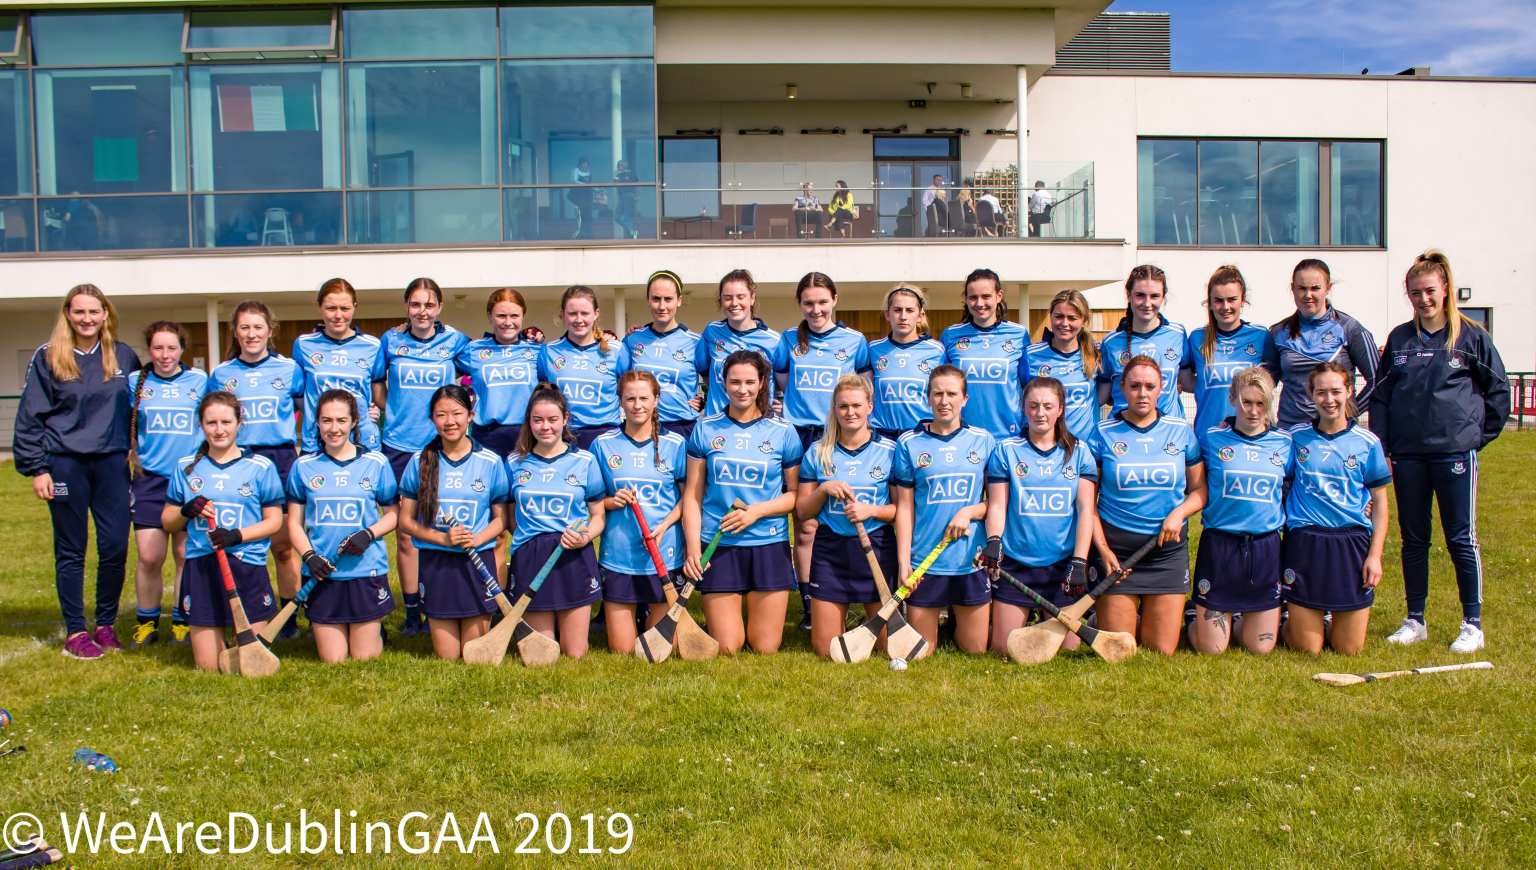 Dublin Intermediate Camogie Squad pictured before their All Ireland championship game in which Kilkenny's Katie Nolan was the star of the show in defeating Dublin.